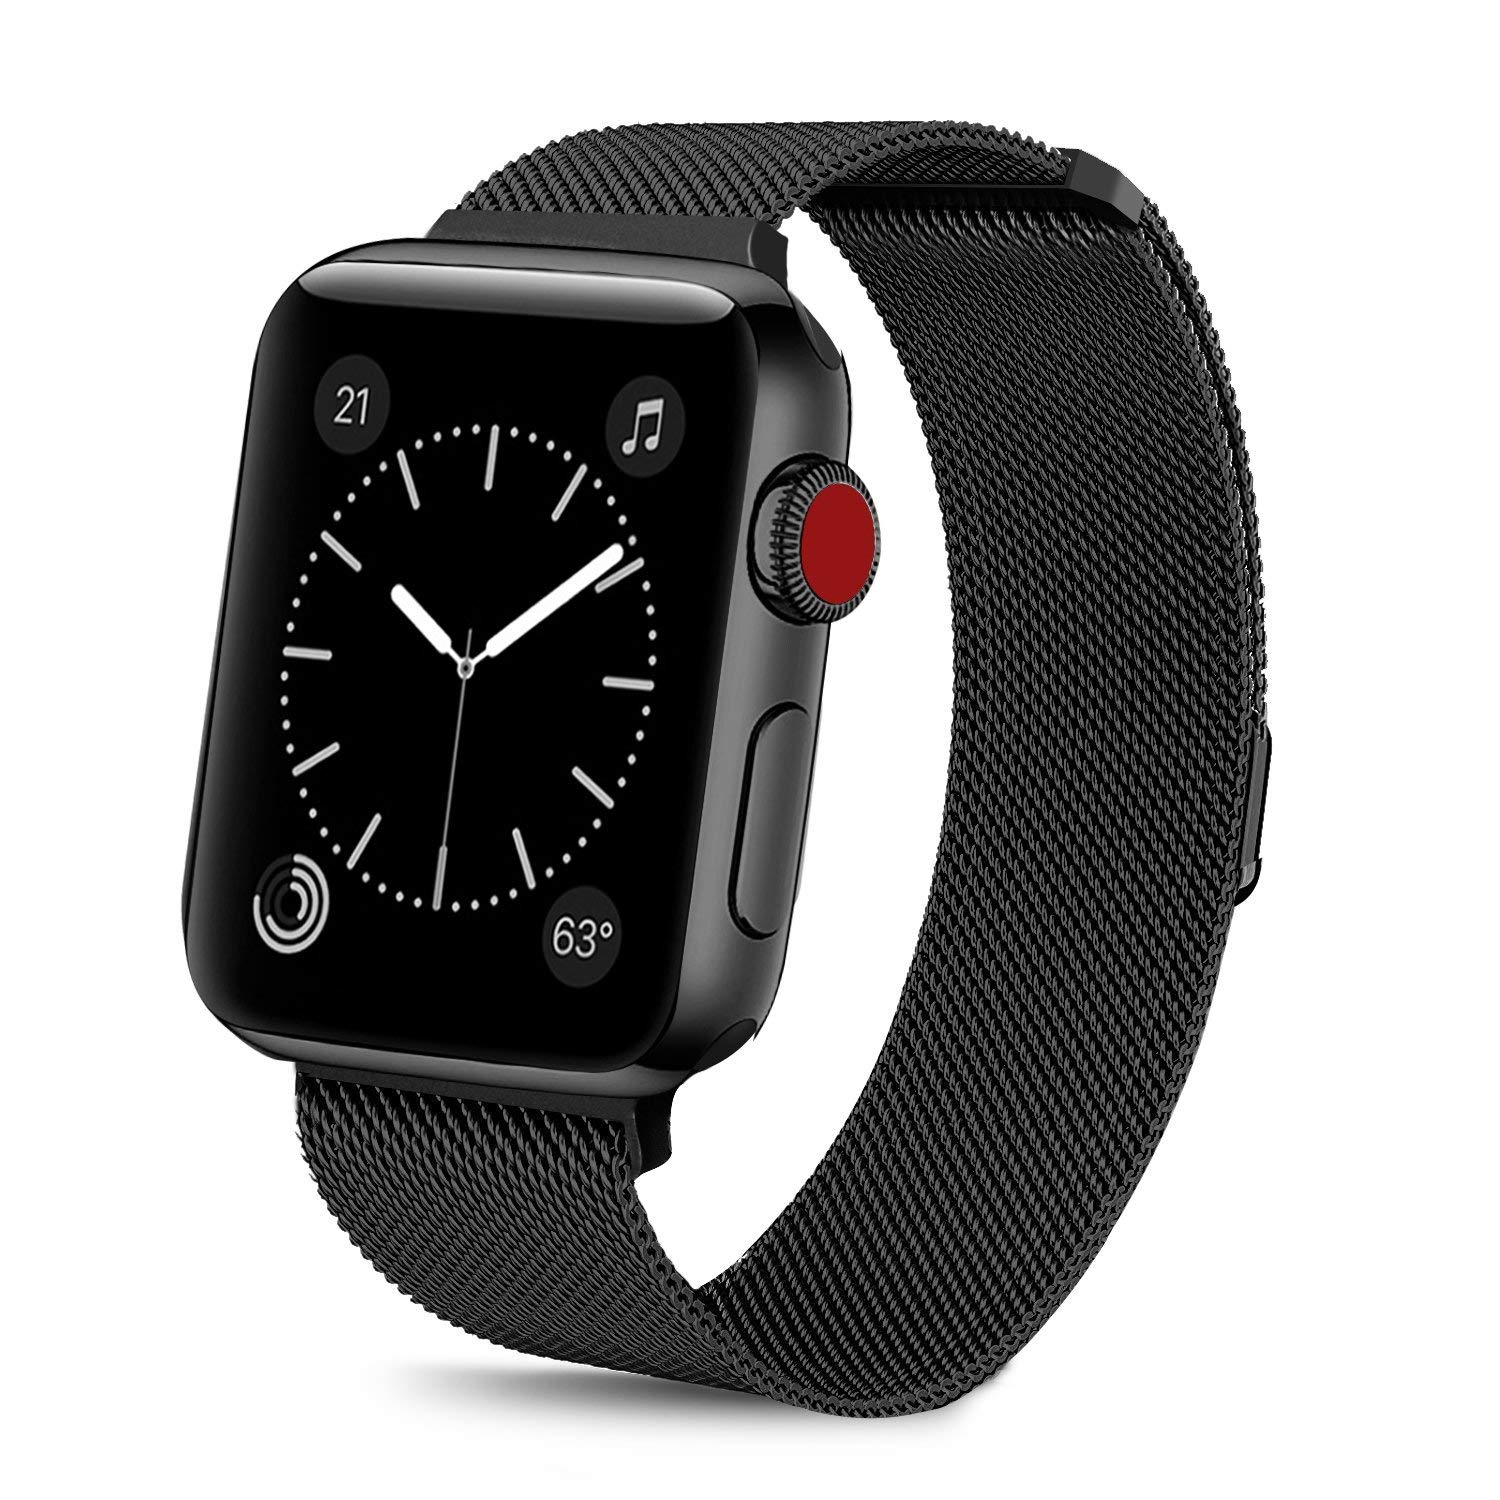 Buy Limited Edition Band For Apple Watch, Black Online in